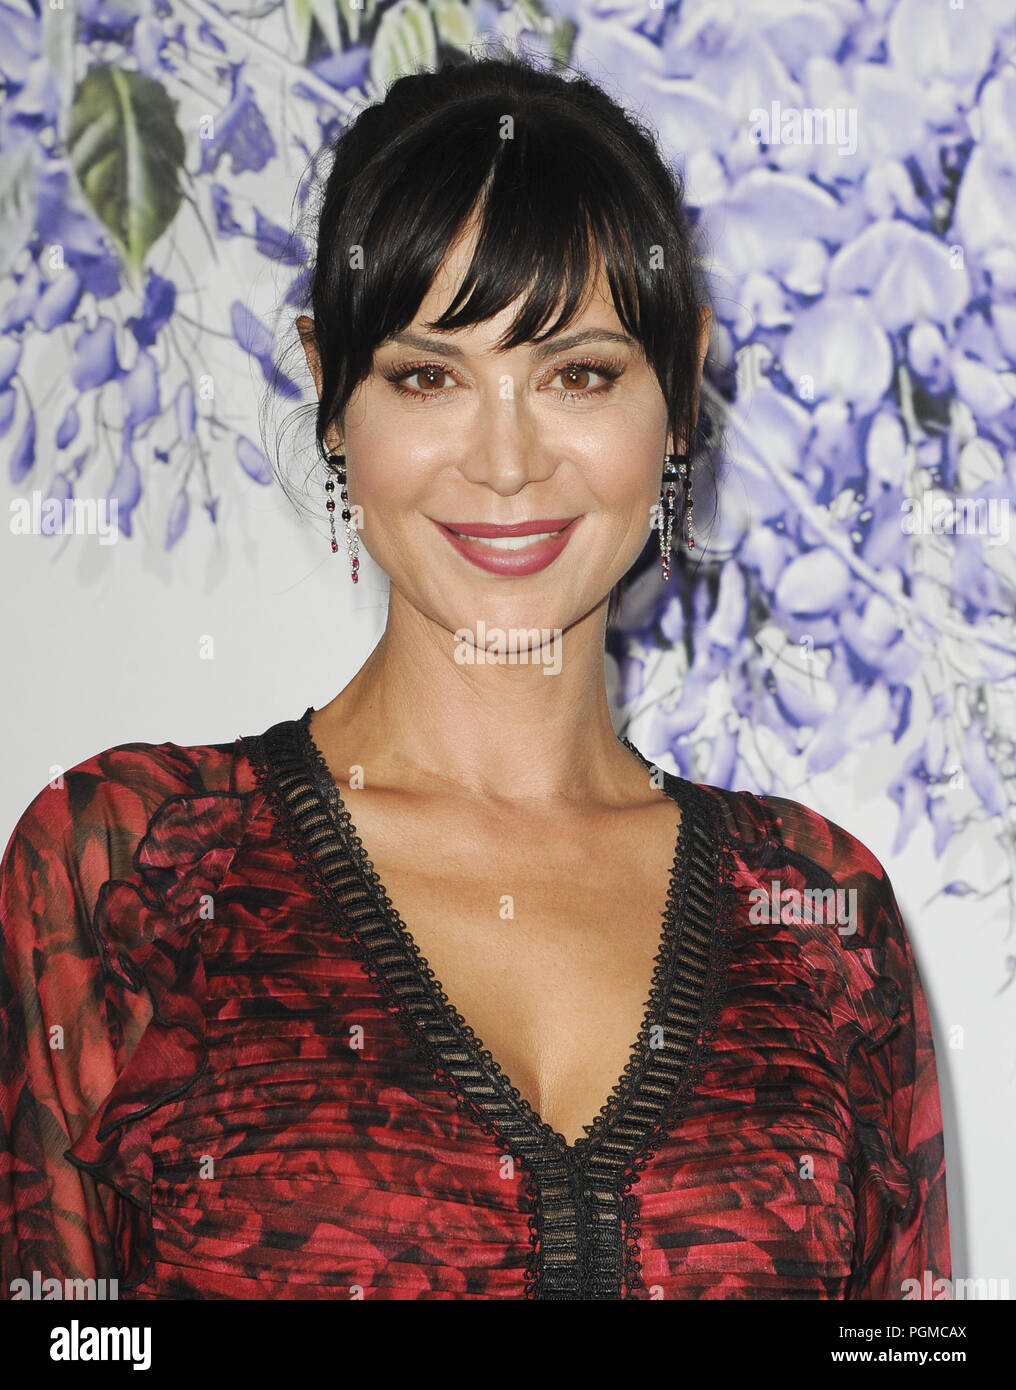 catherine bell 2018